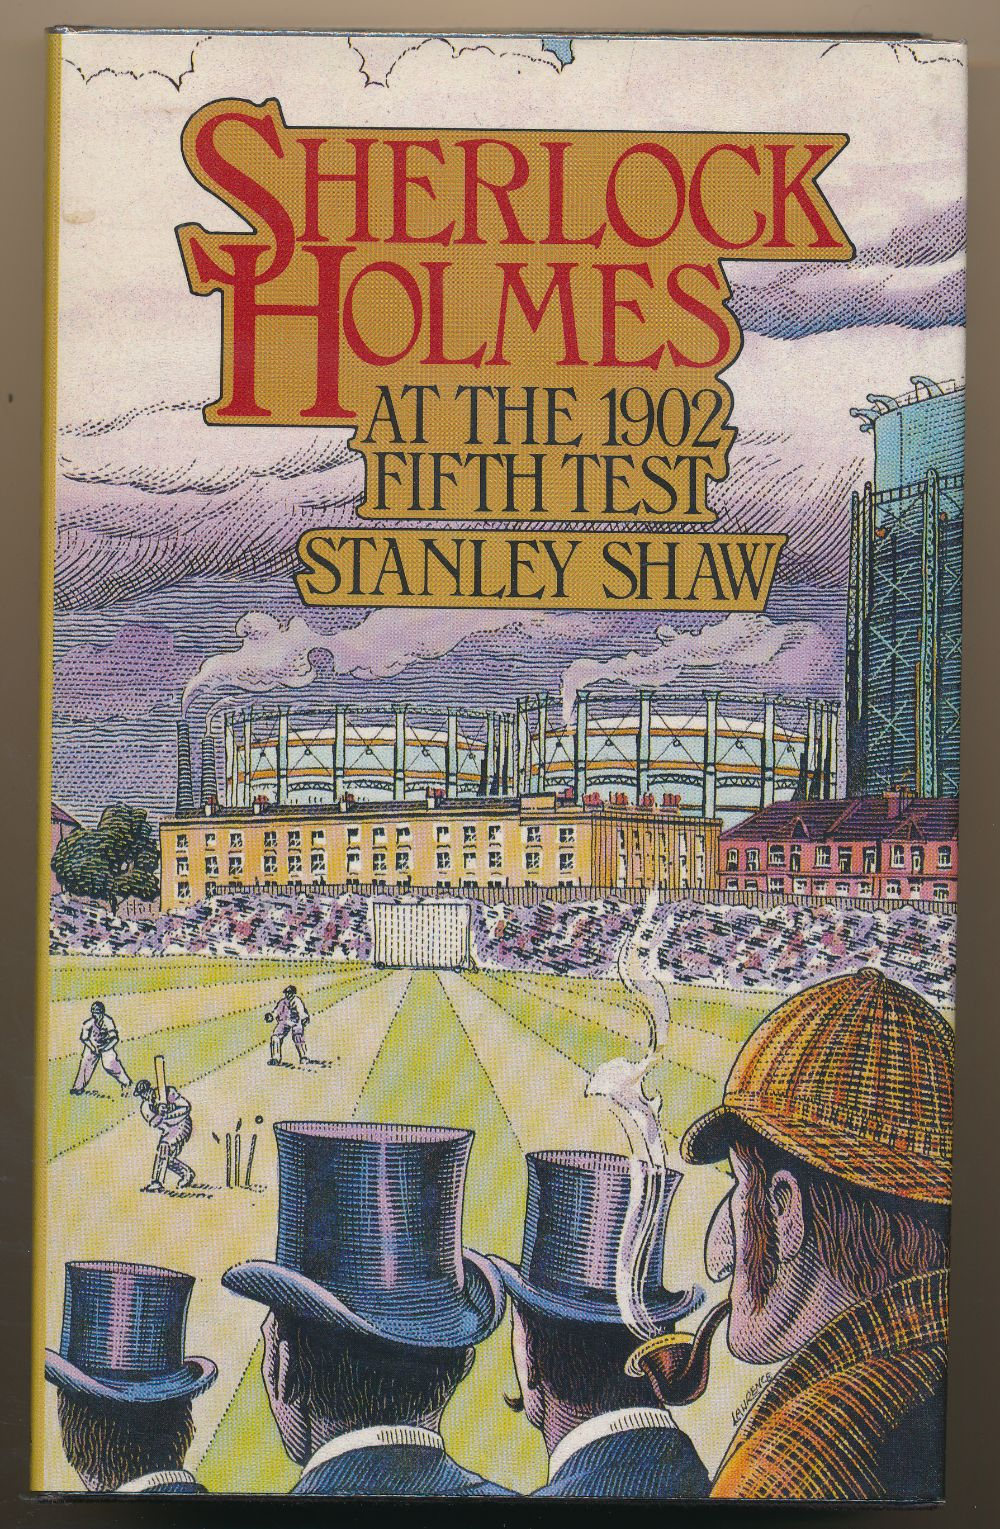 Sherlock Holmes at the 1902 Fifth Test